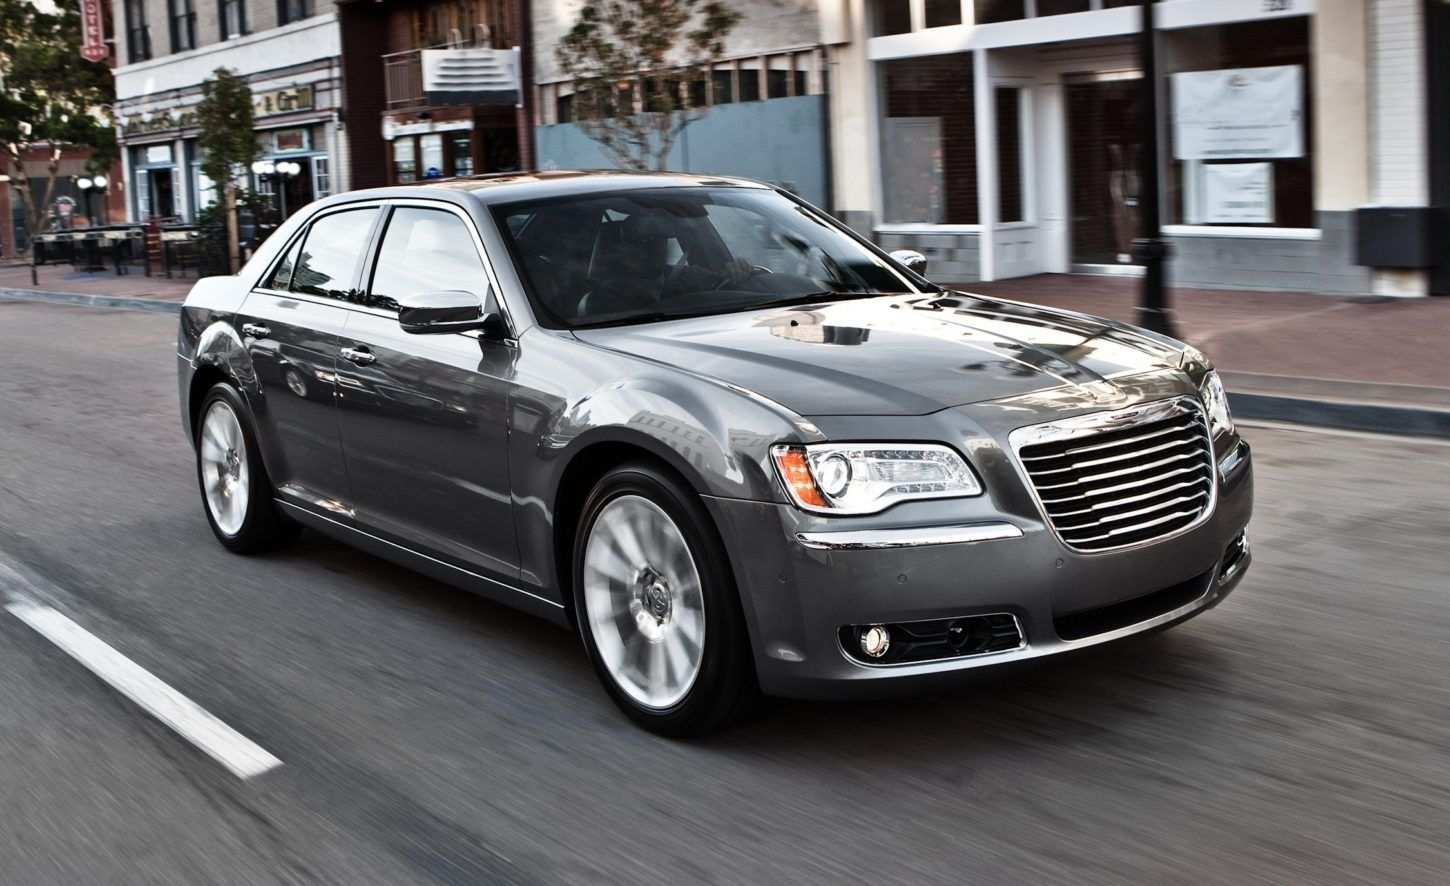 79 New 2019 Chrysler 300 Release Date Model